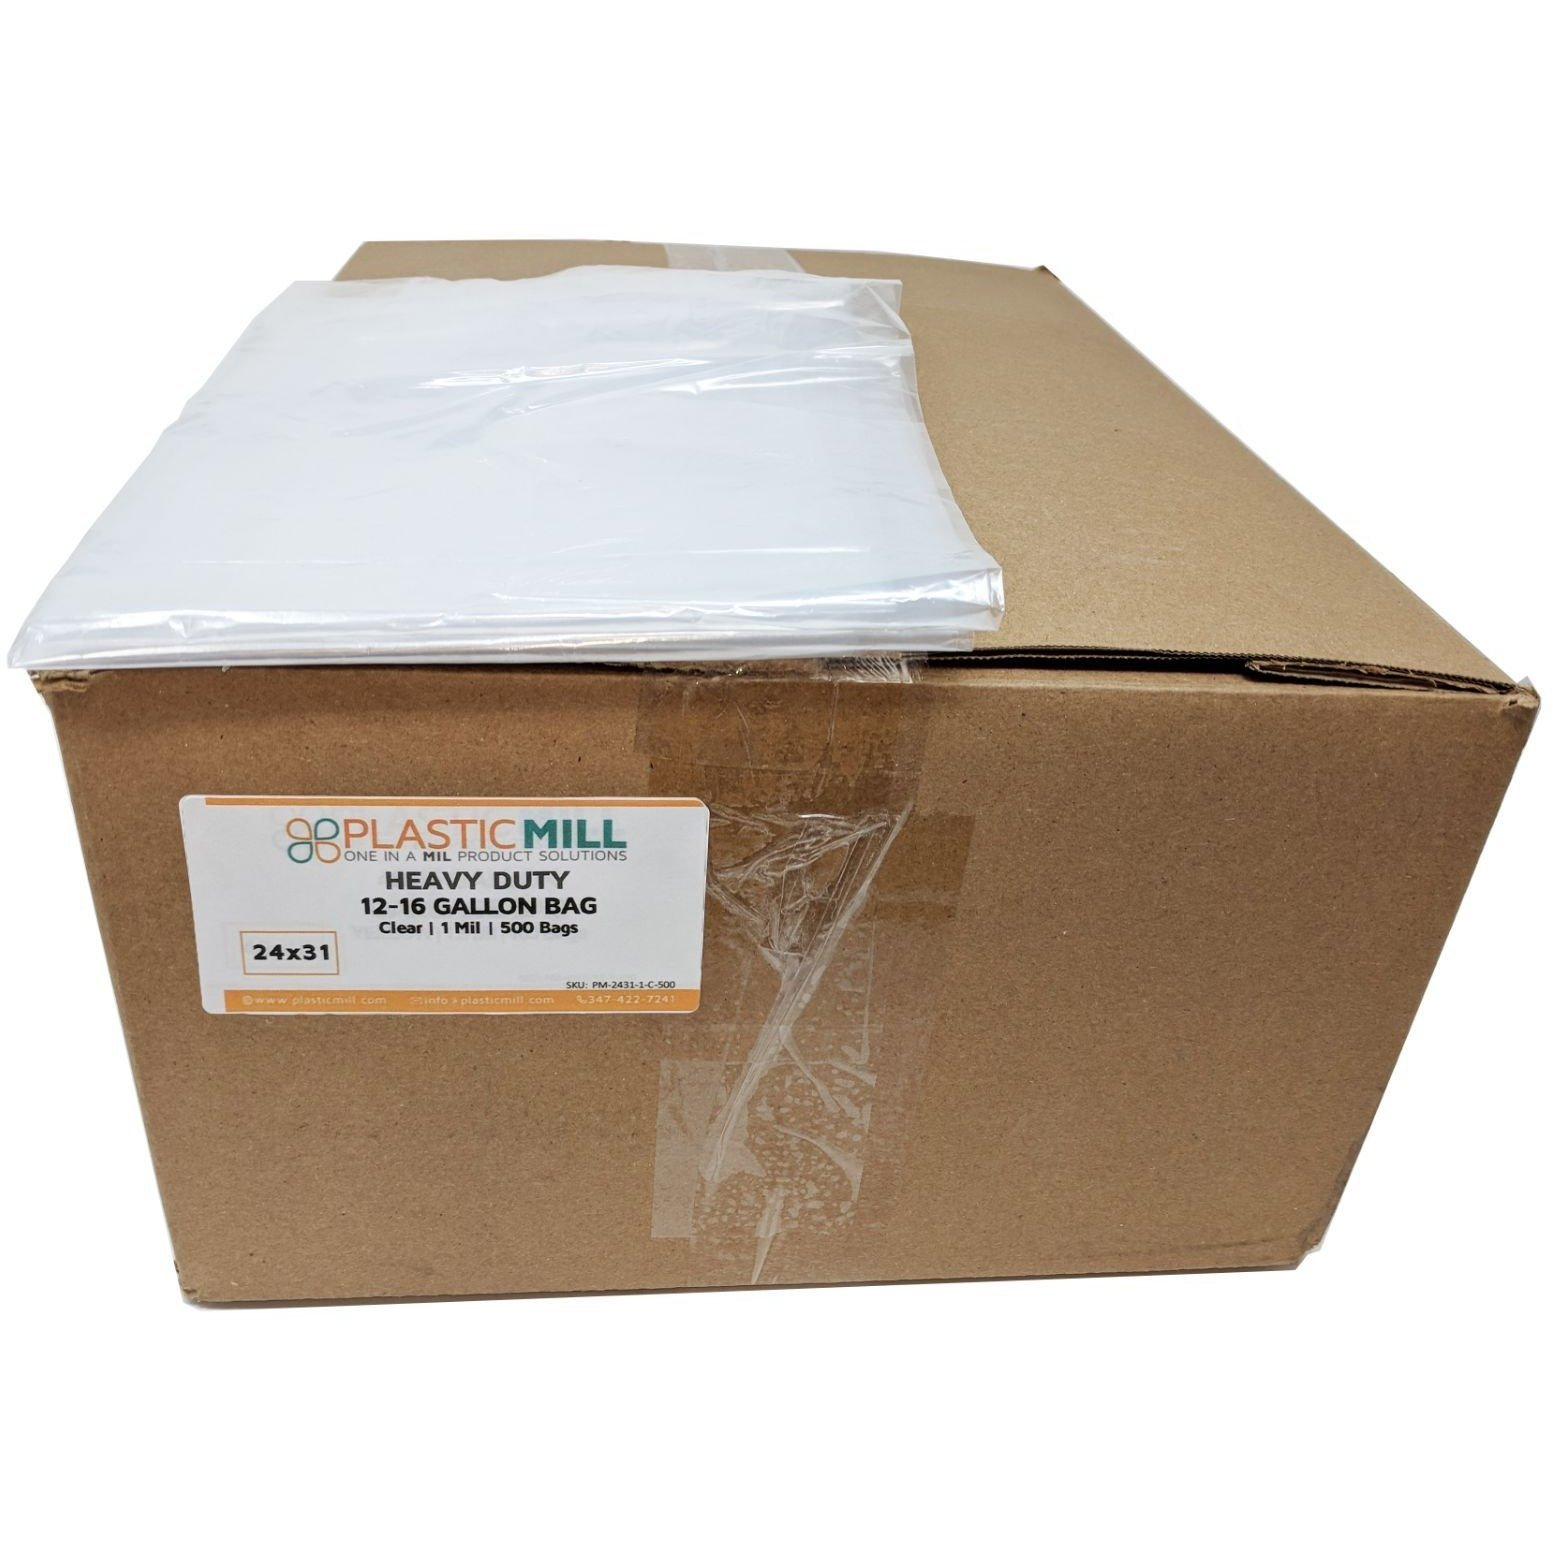 PlasticMill 12-16 Gallon, Clear, 1 Mil, 24x31, 500 Bags/Case, Garbage Bags/Trash Can Liners.